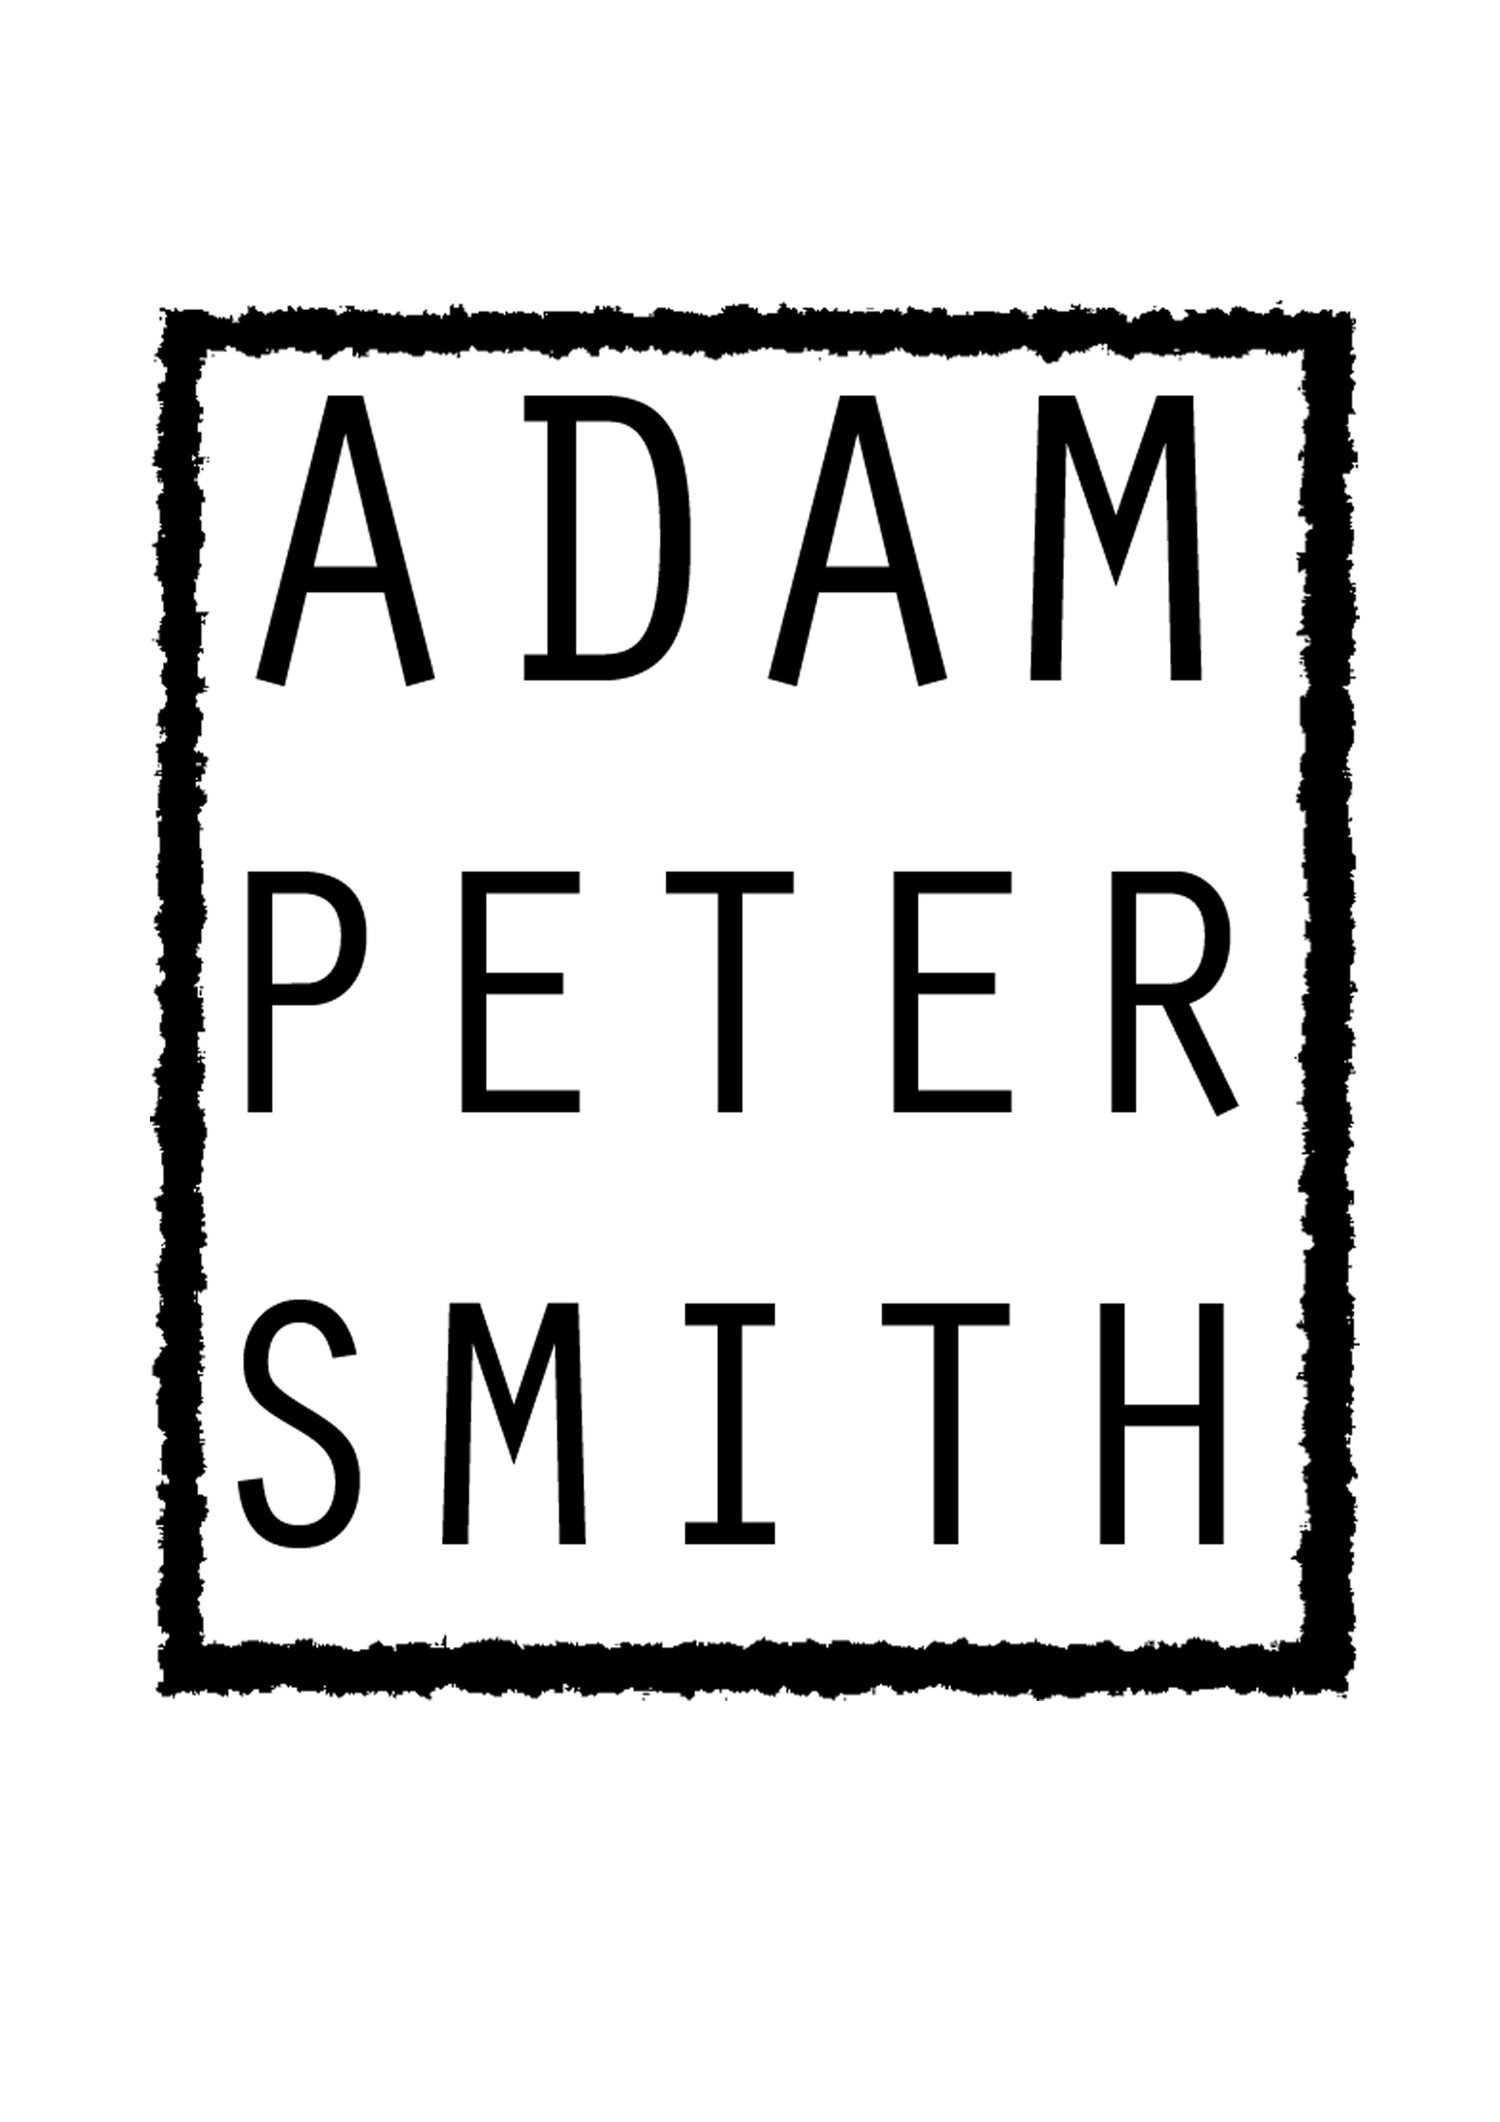 Adam peter smith